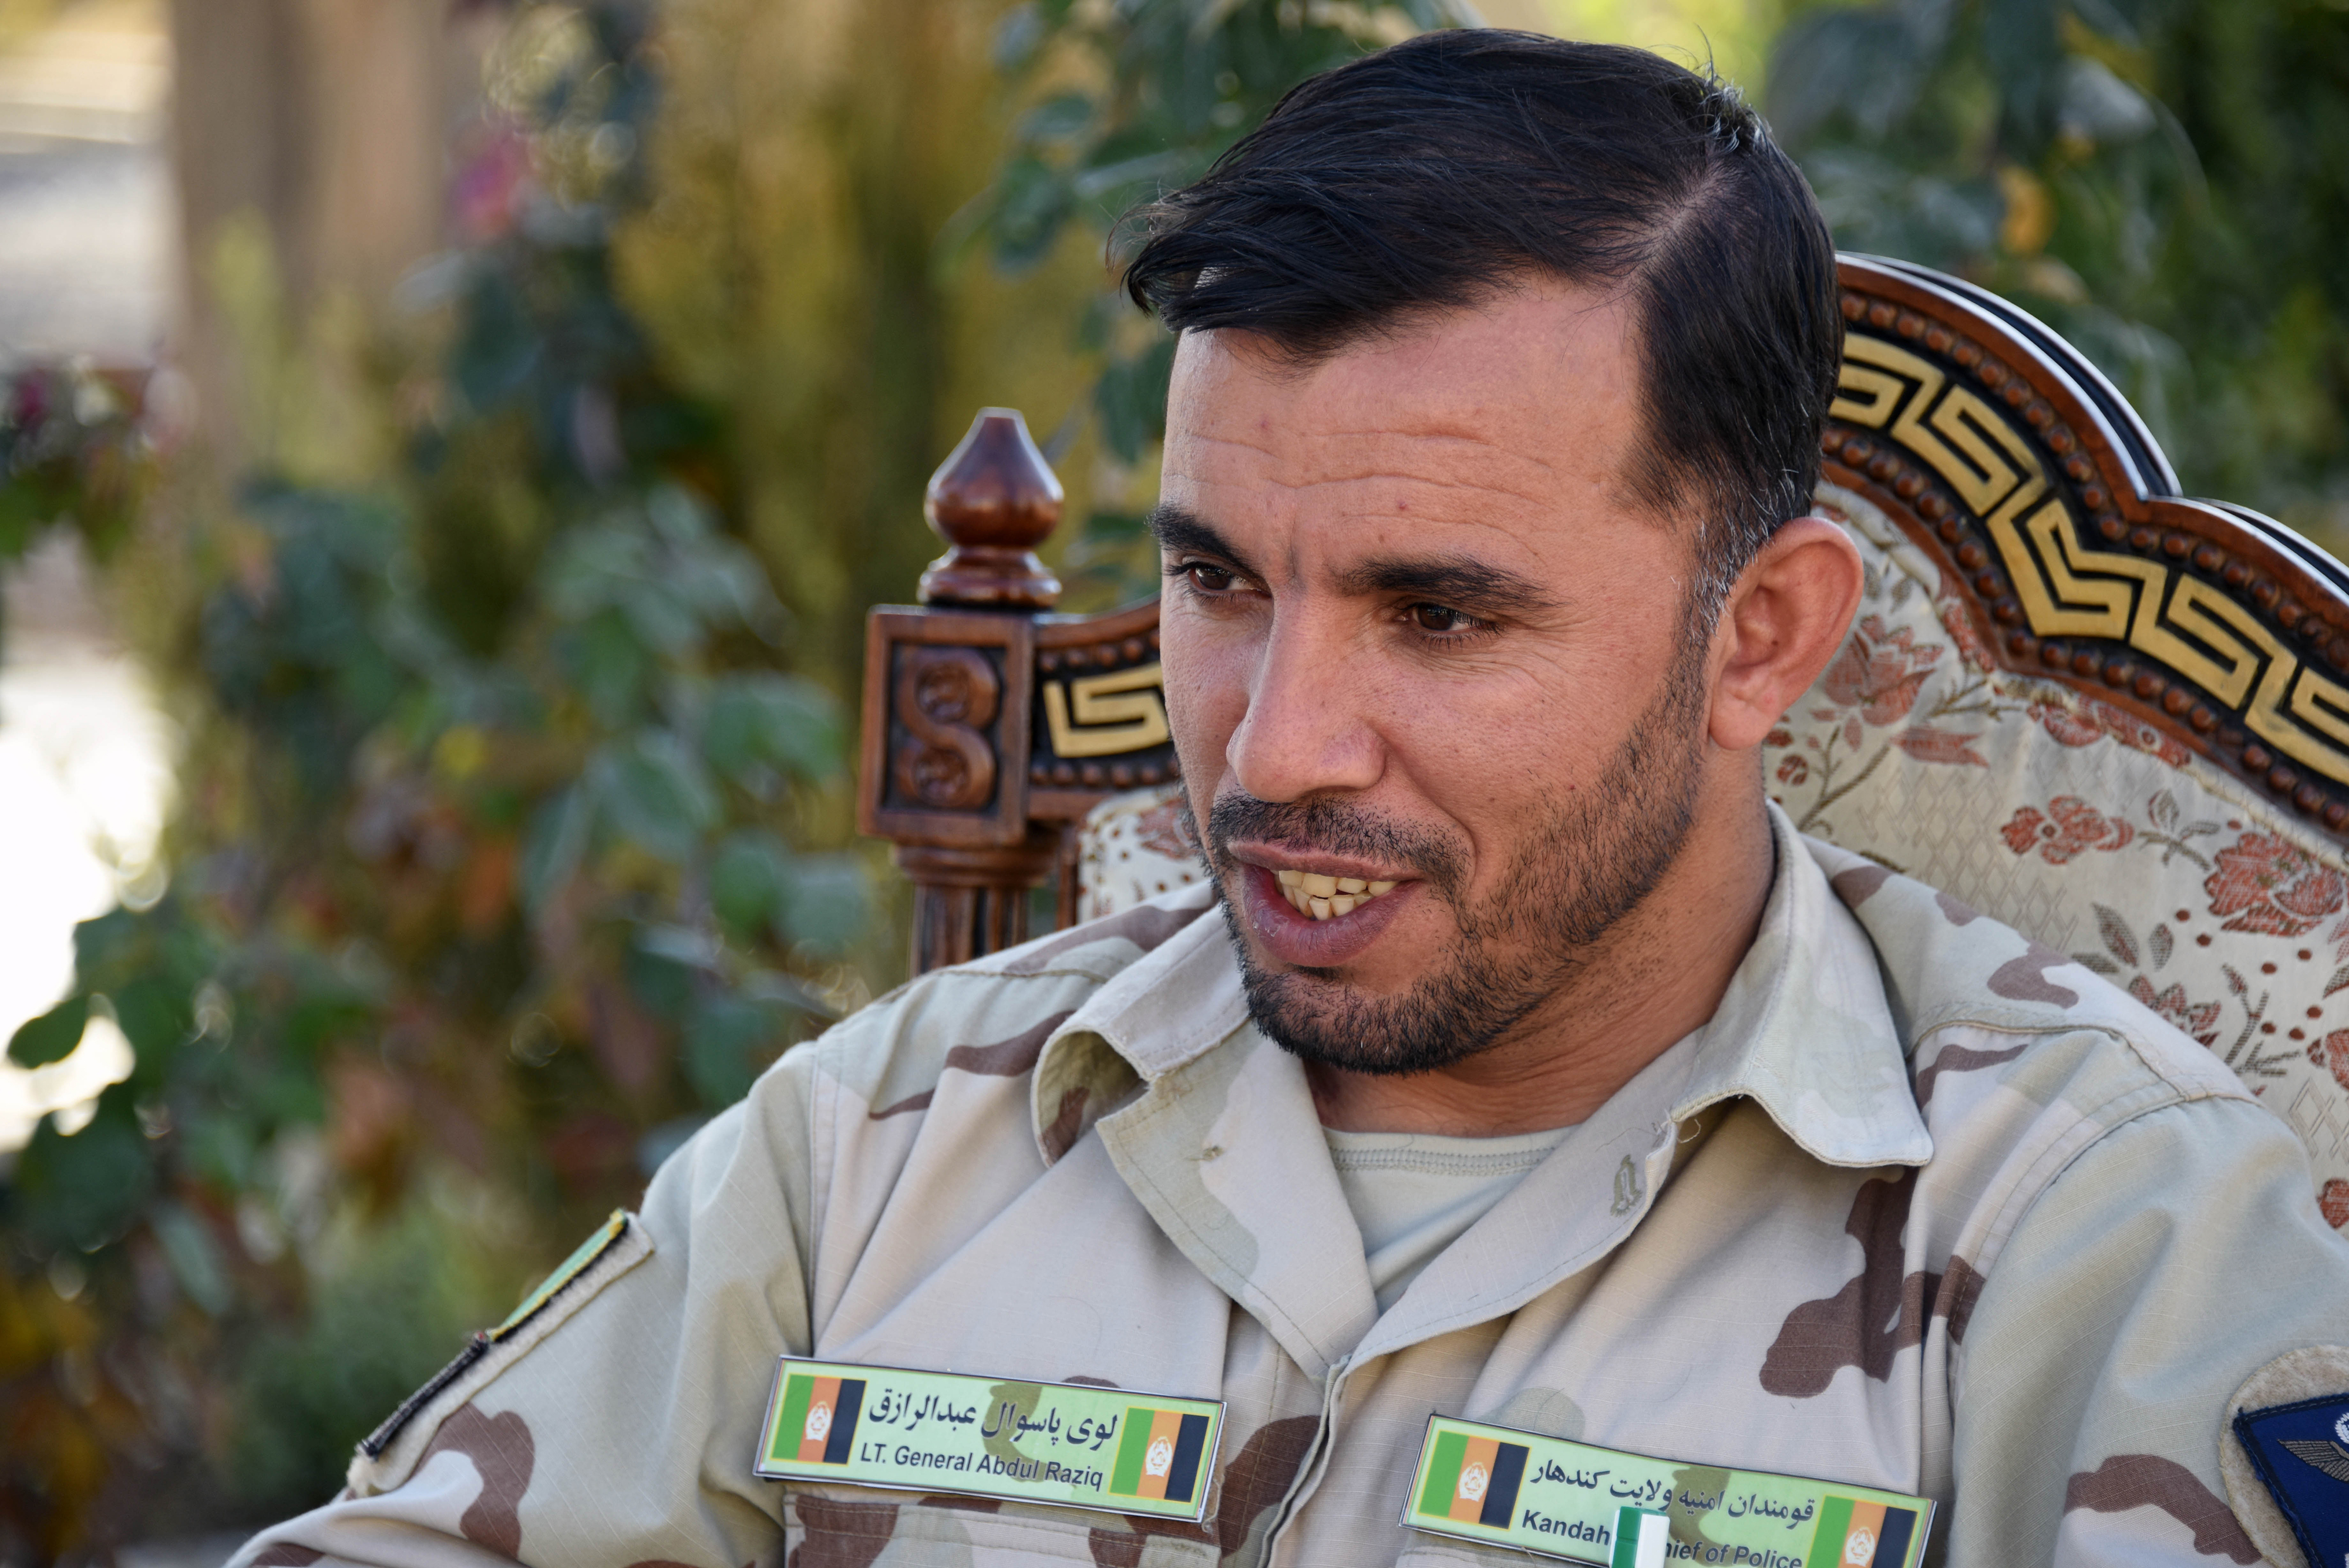 Slain Afghan general remembered as patriot, staunch Taliban opponent